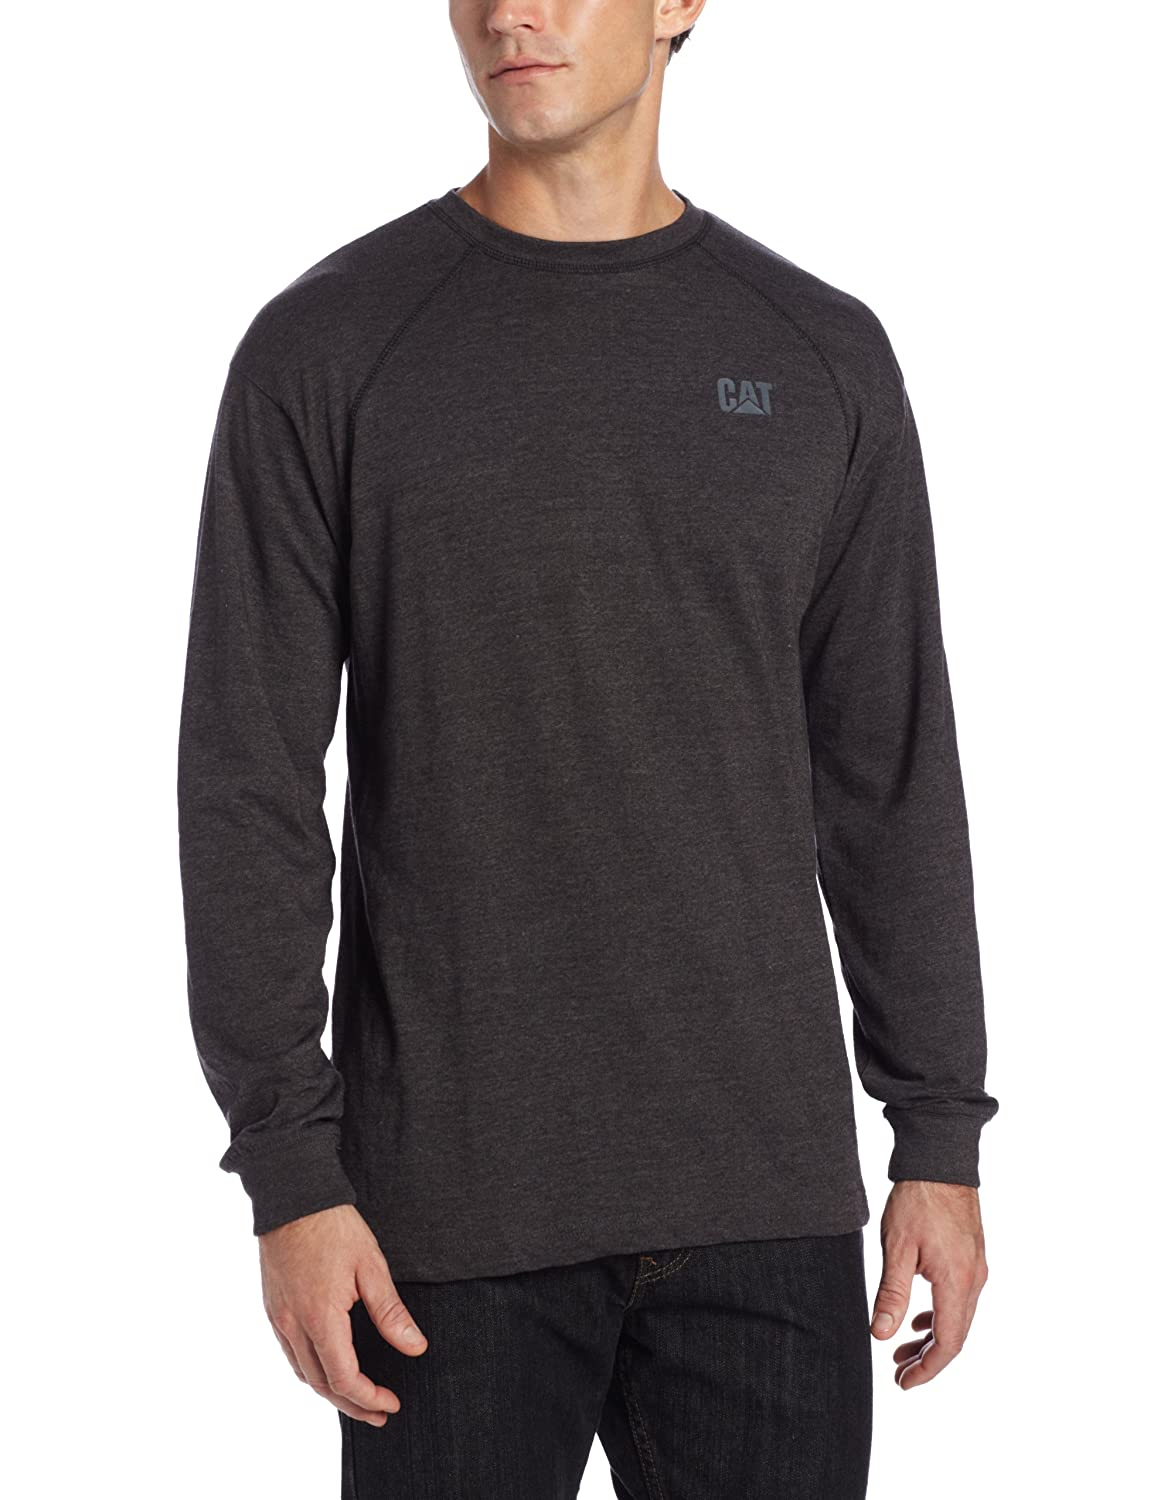 Caterpillar SHIRT メンズ B00EFRJ0X2 L|Charcoal Heather Grey Charcoal Heather Grey L